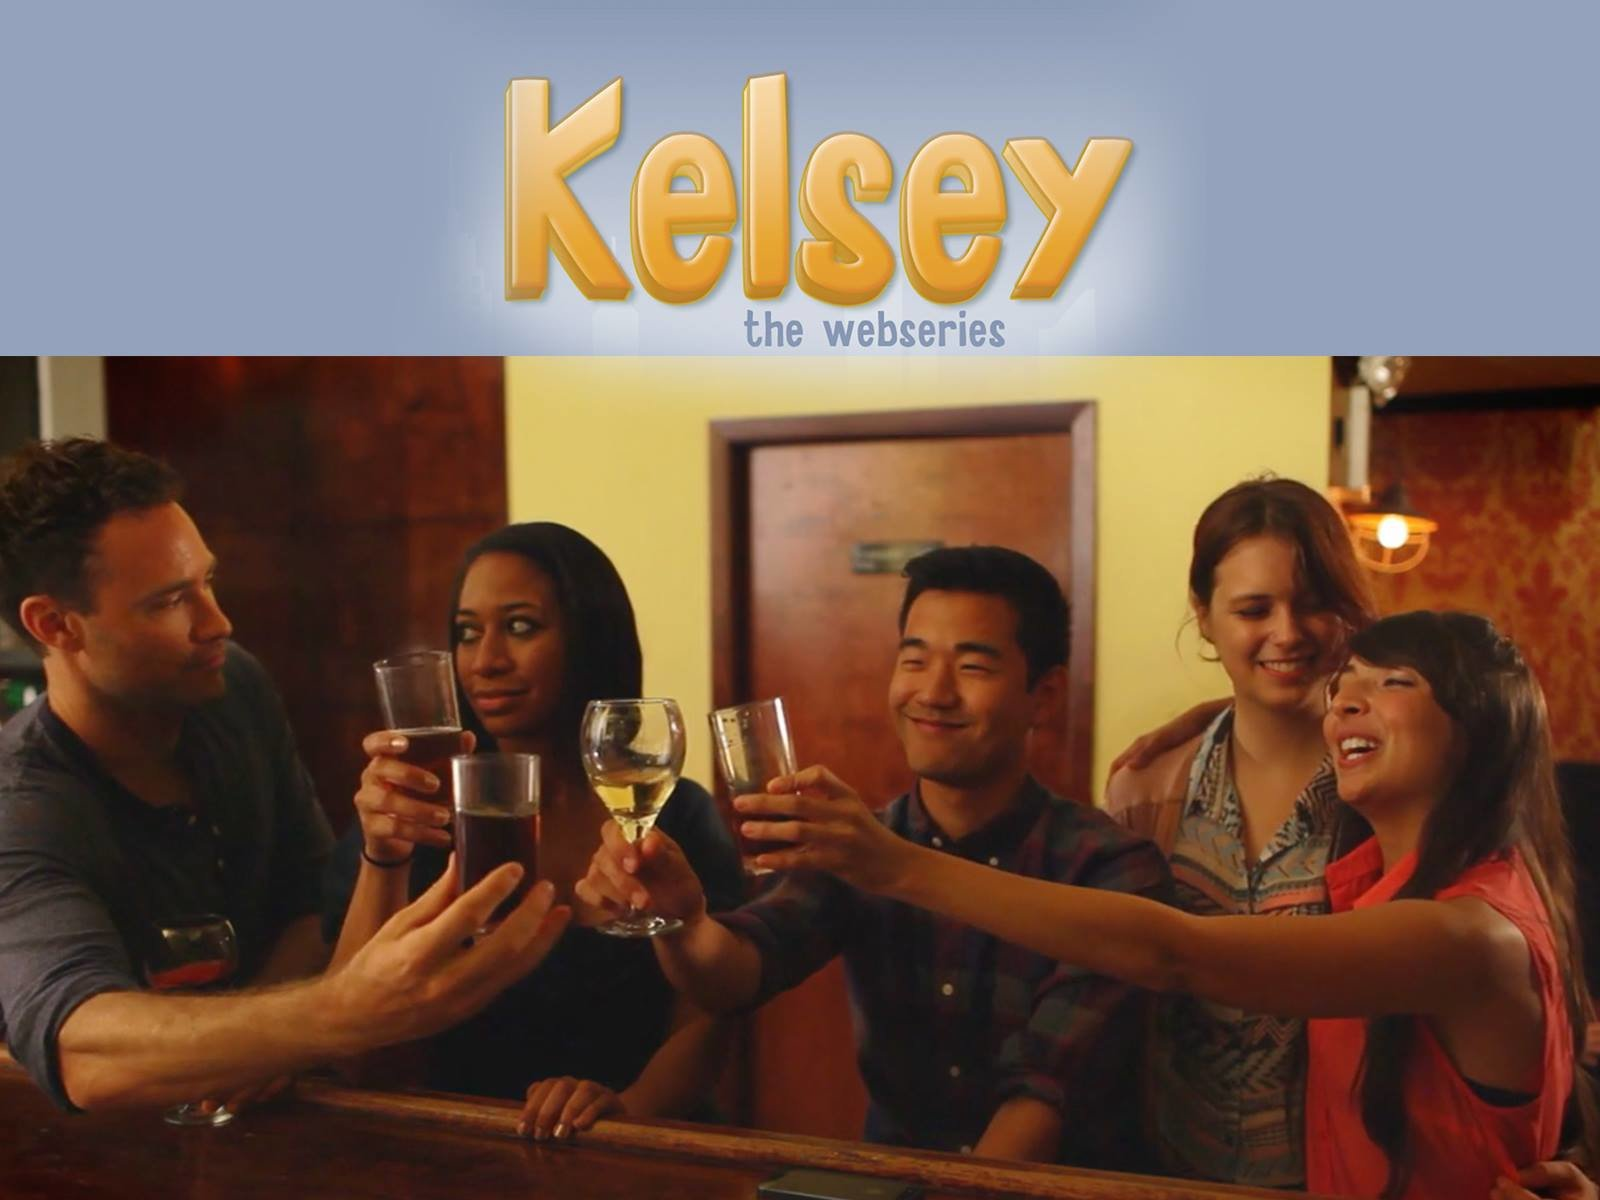 Kelsey, the webseries - Season 1